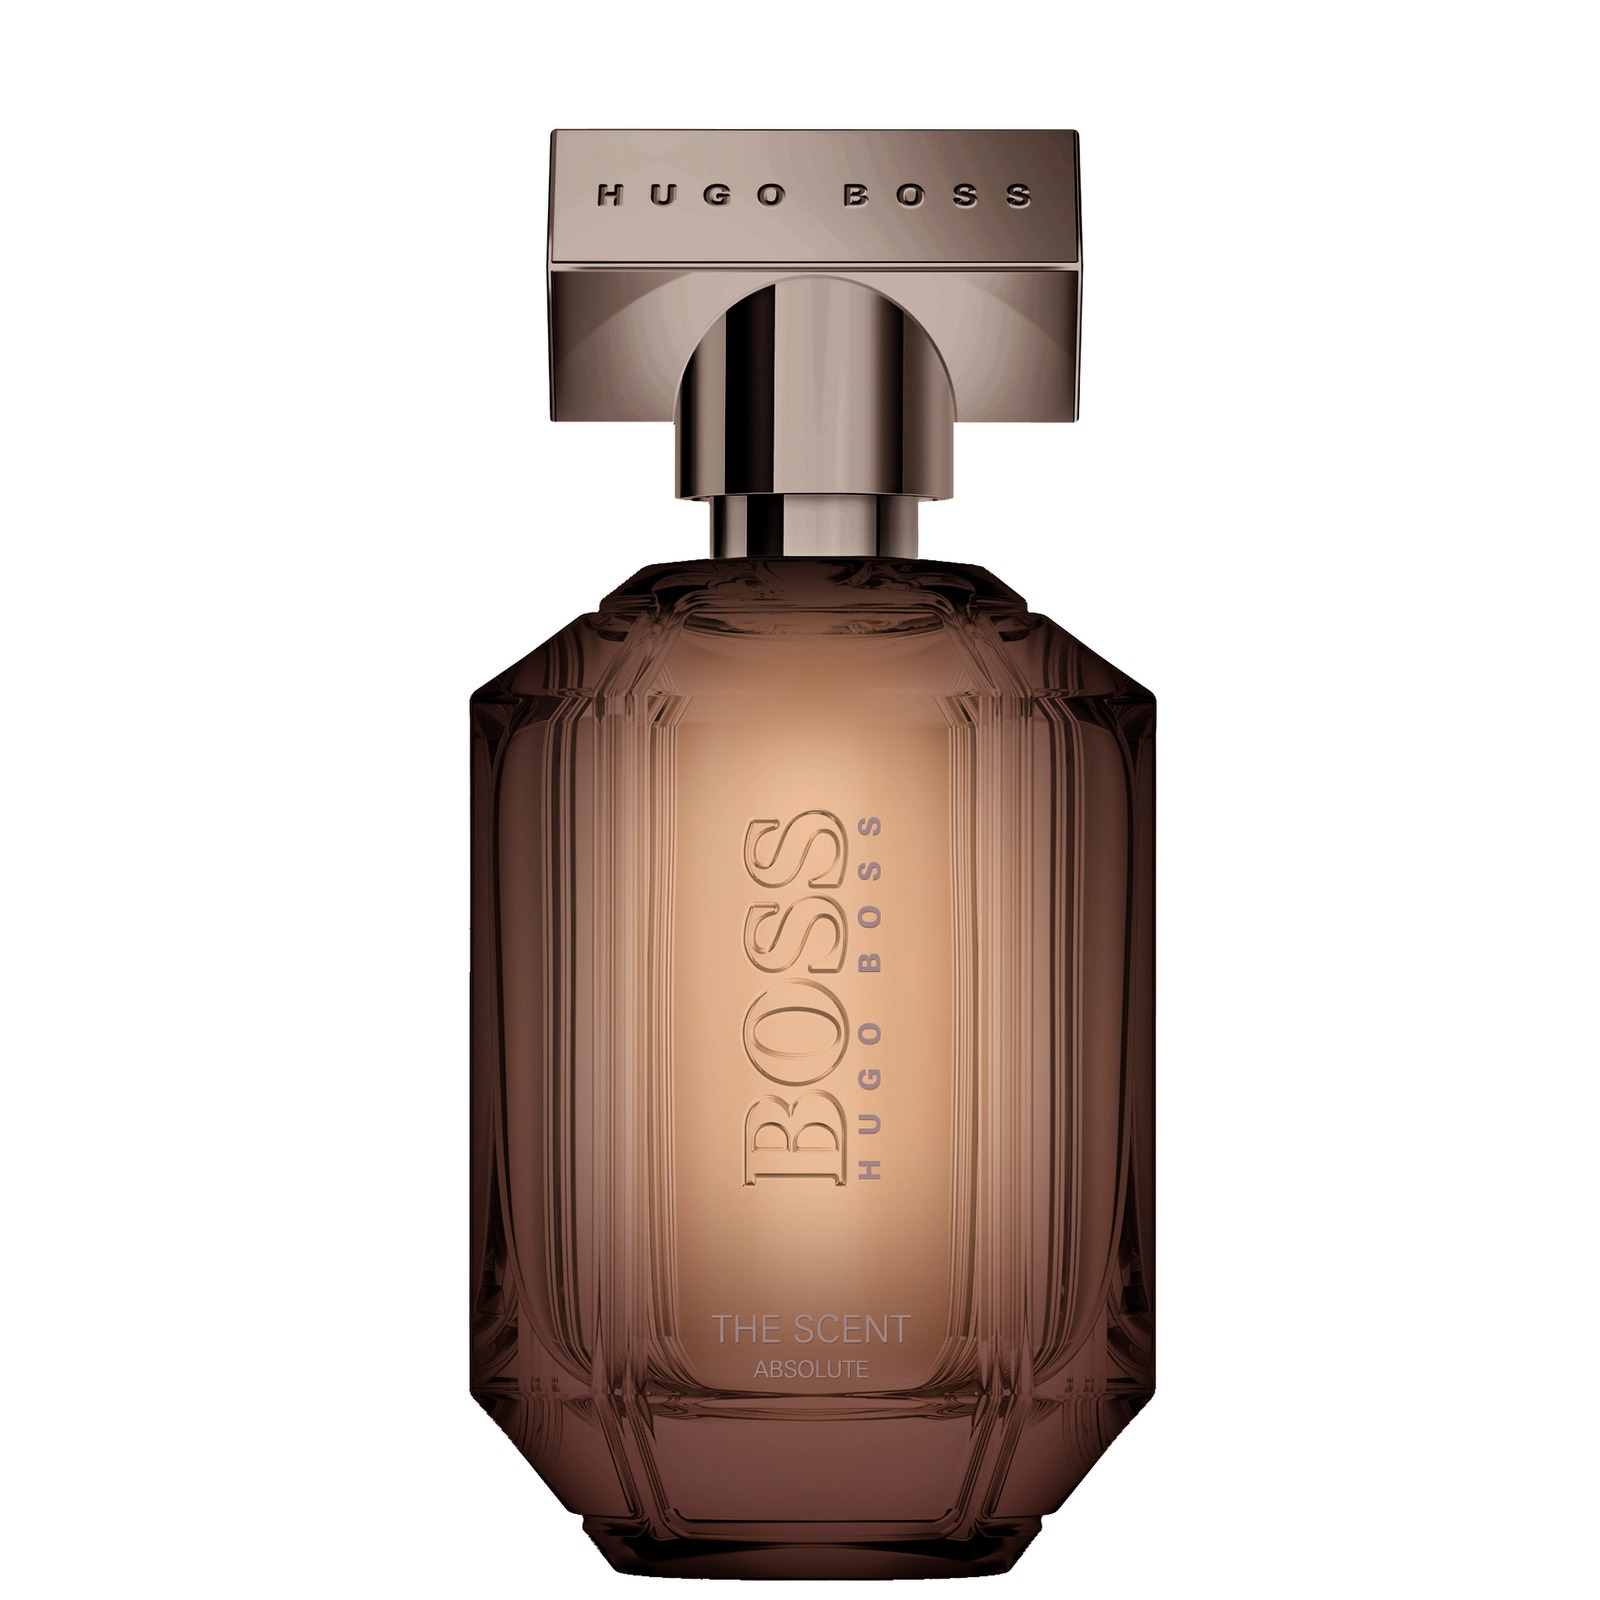 los angeles save off on sale Hugo Boss Boss The Scent Absolute For Her Eau de Parfum Spray 50ml